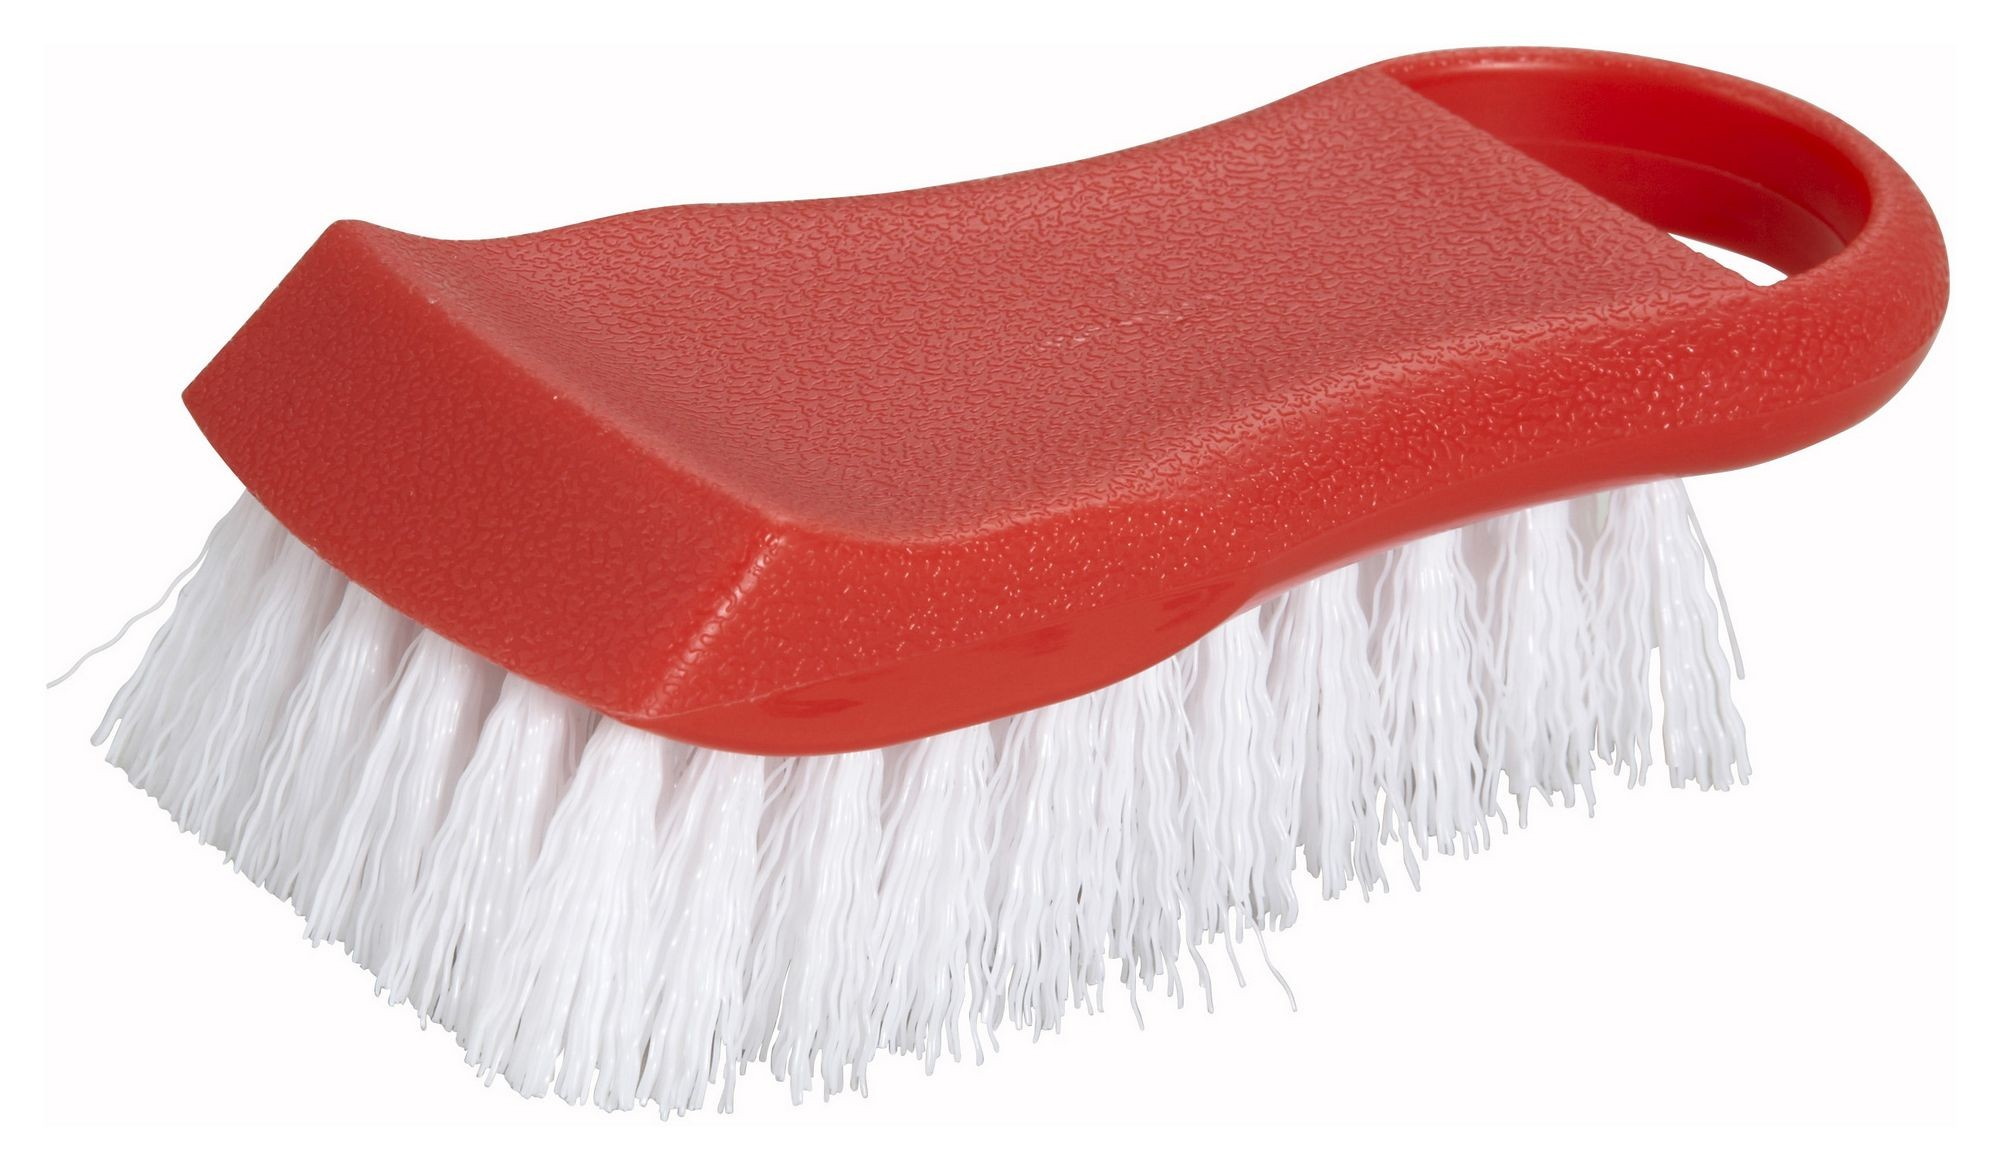 Red Cutting Board Brush